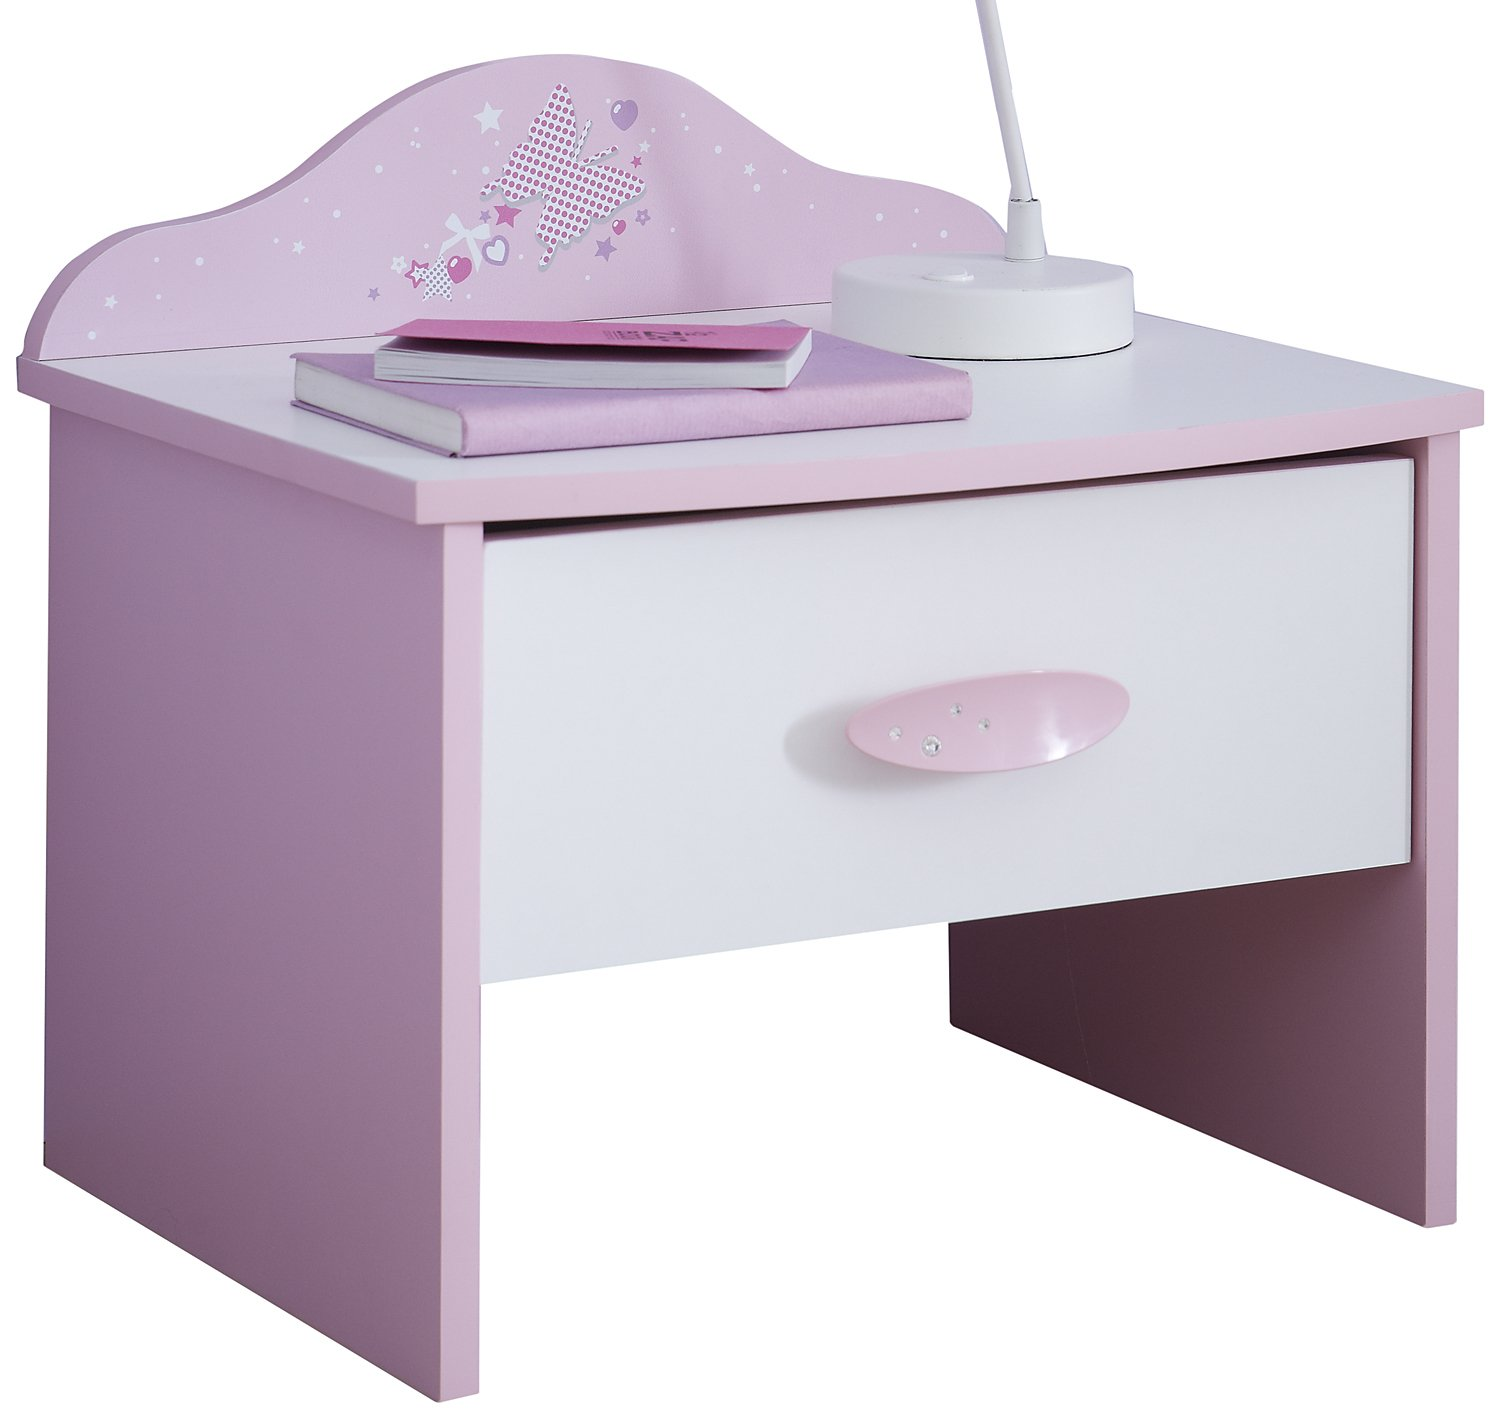 """Demeyere """"Papillon 1-Drawer Bedside Cabinet, Wood, Orchid/White 365470 F00361602043_PINK"""